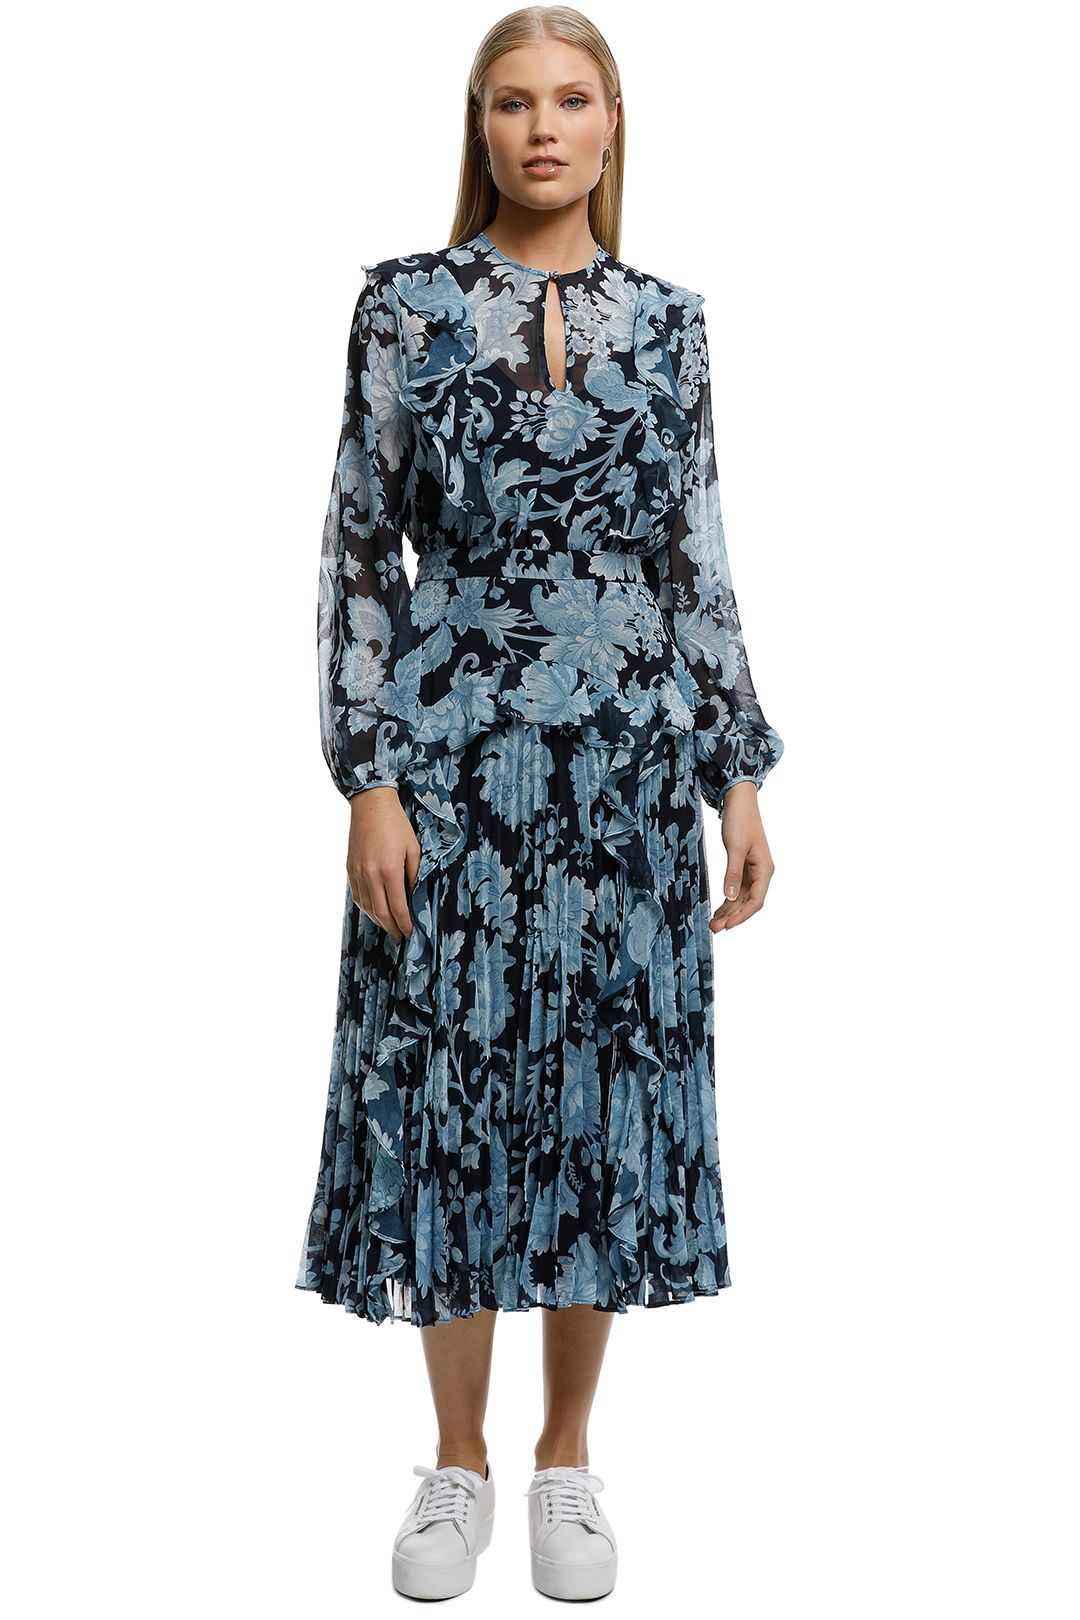 Lover-Florence Pleat Midi Dress-Navy-Front